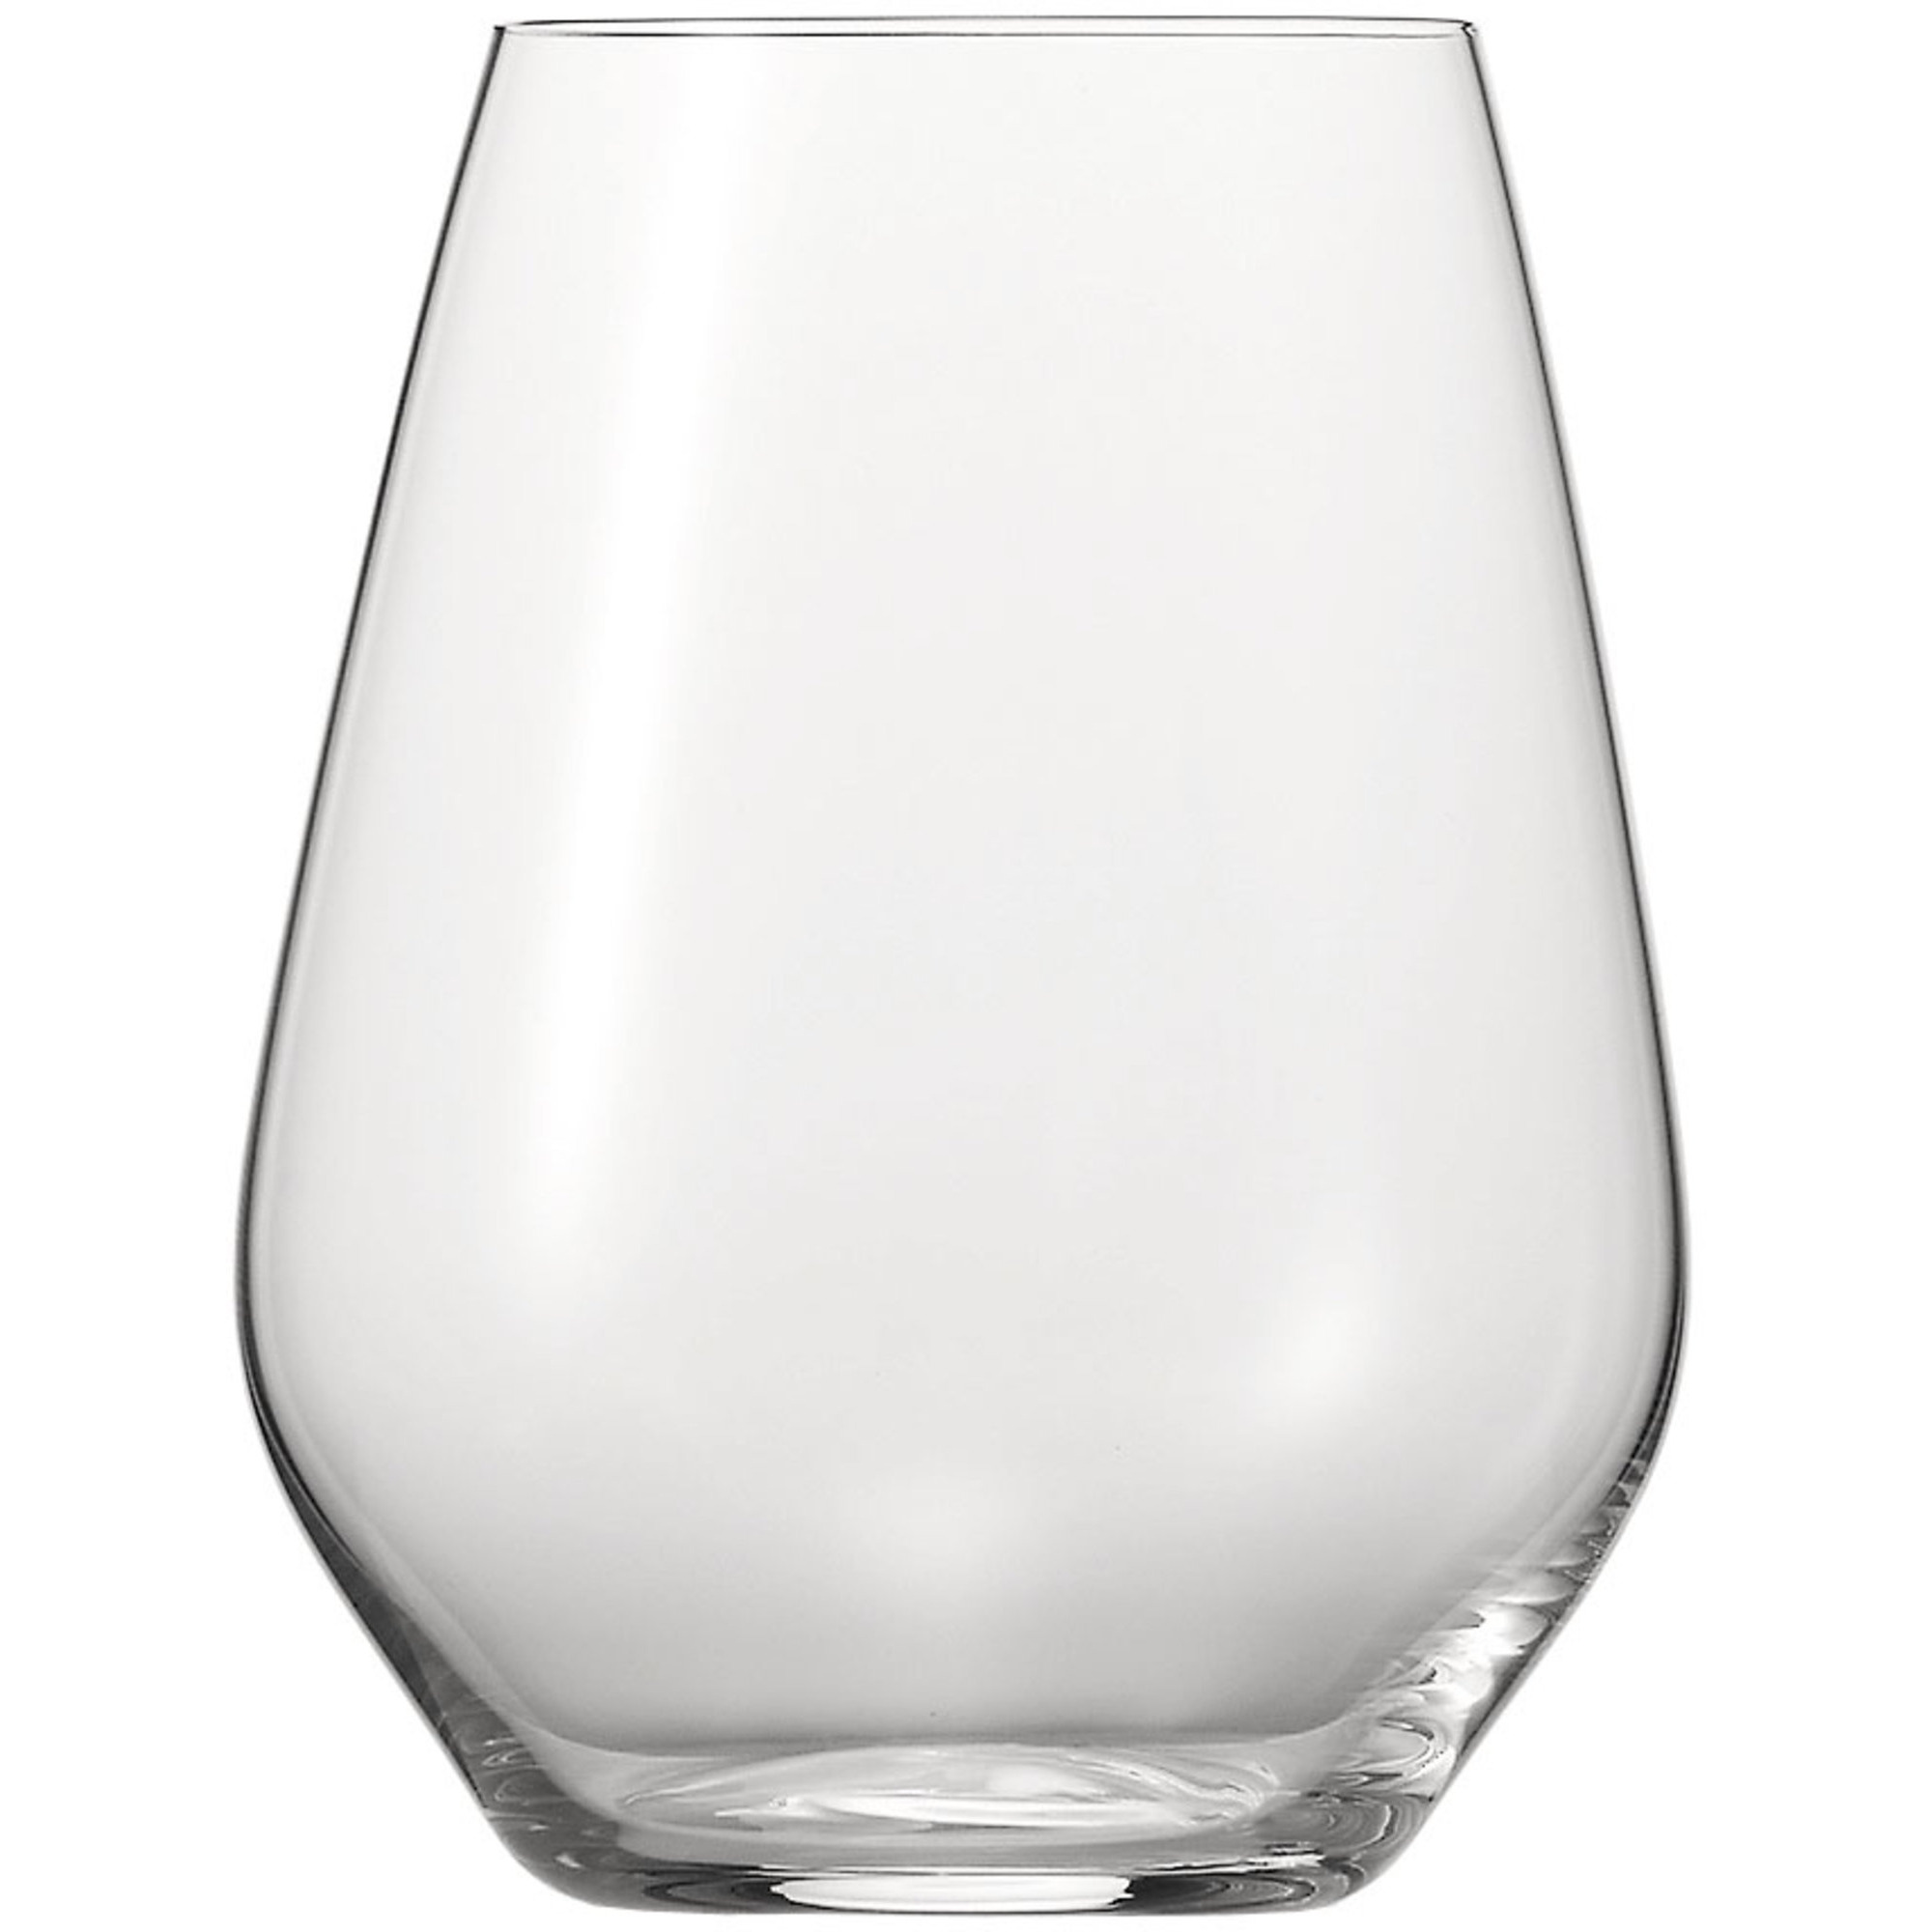 Spiegelau Authentis Vitvinsglas 42cl 4-p